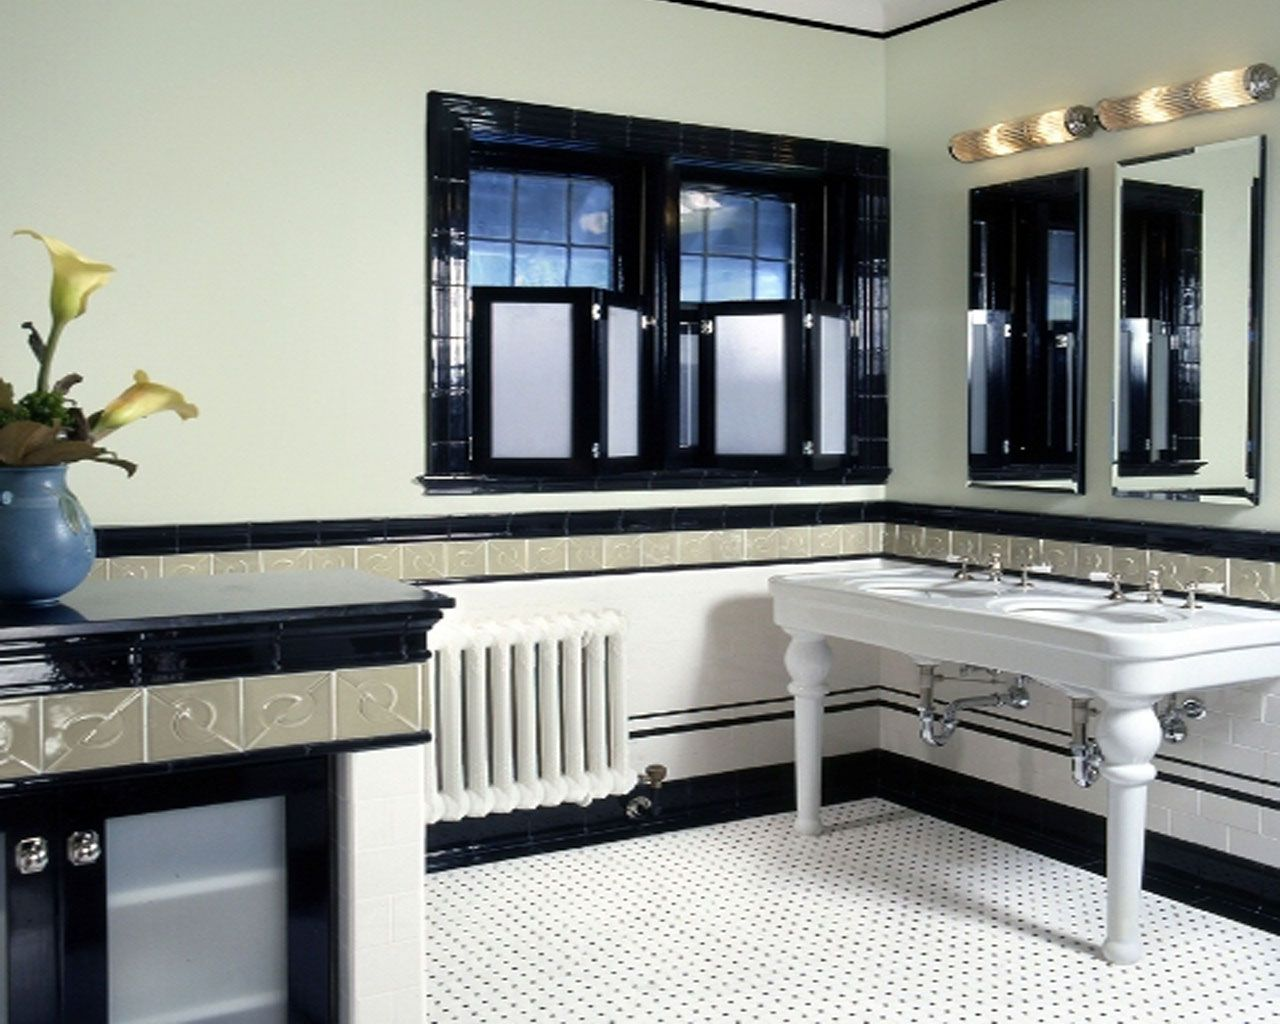 Bathroom Black White Art Deco Interior Designs To Inspire Your Relaxing Sanctuary 22 Fantastic Style Design